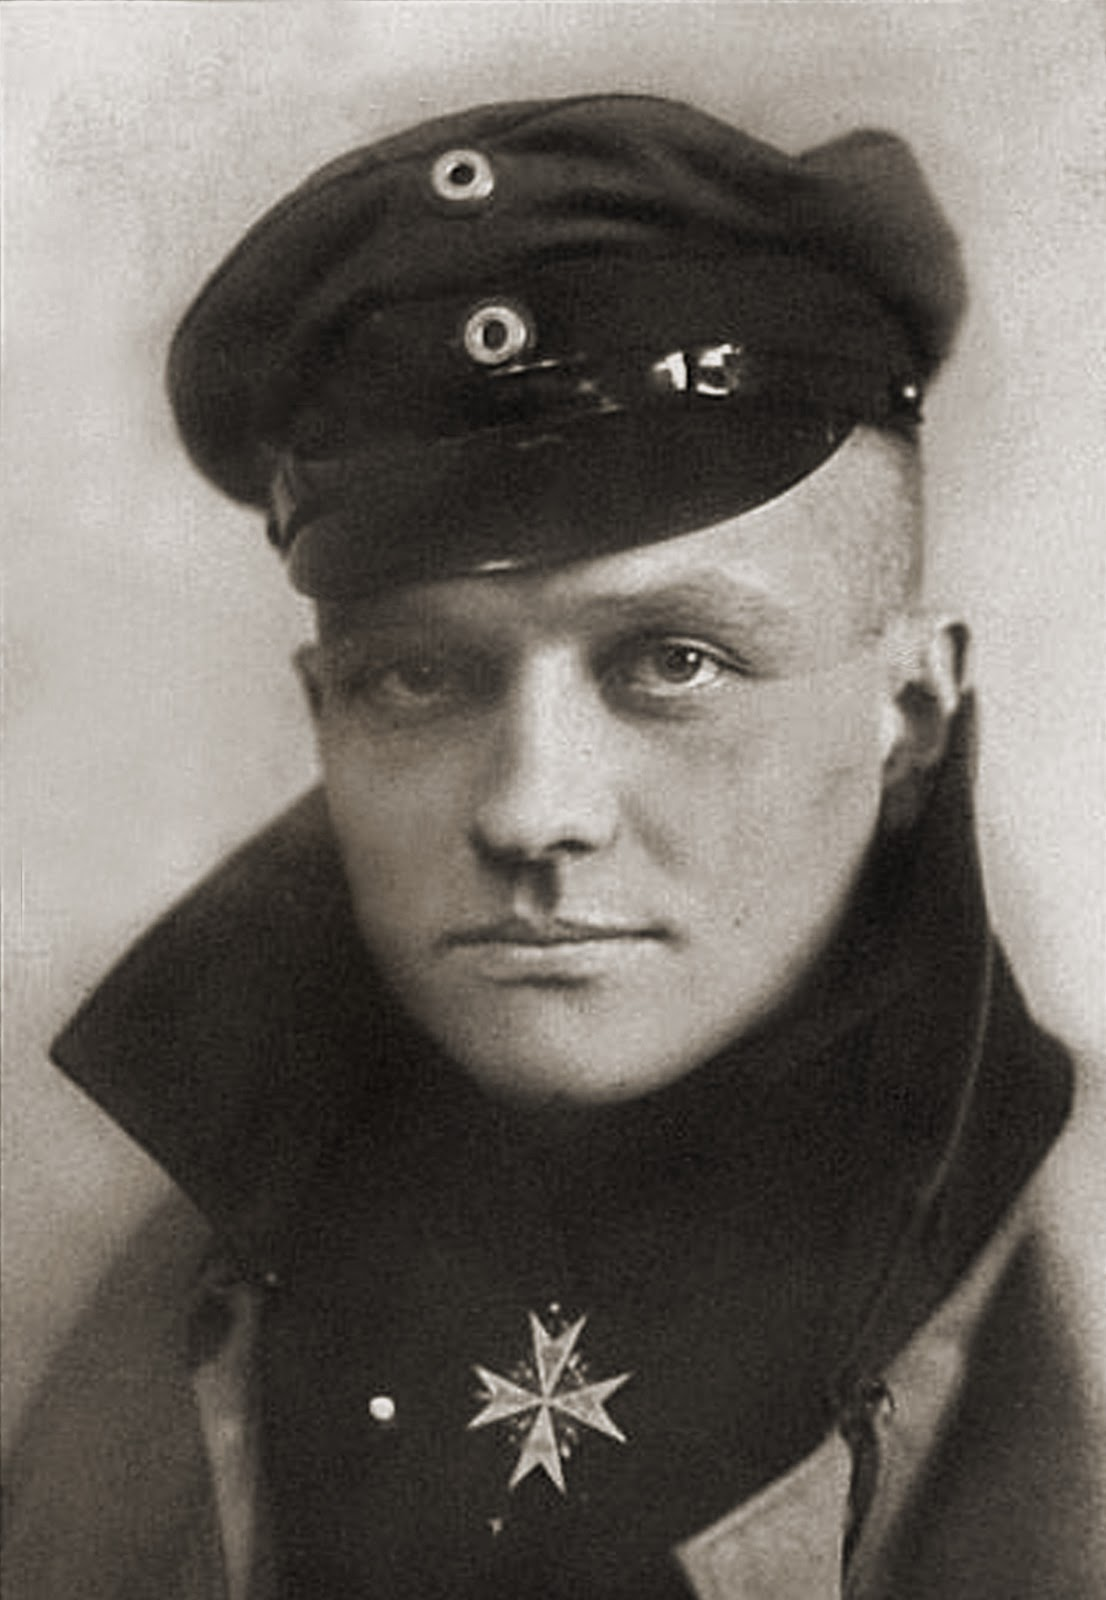 who was red baron